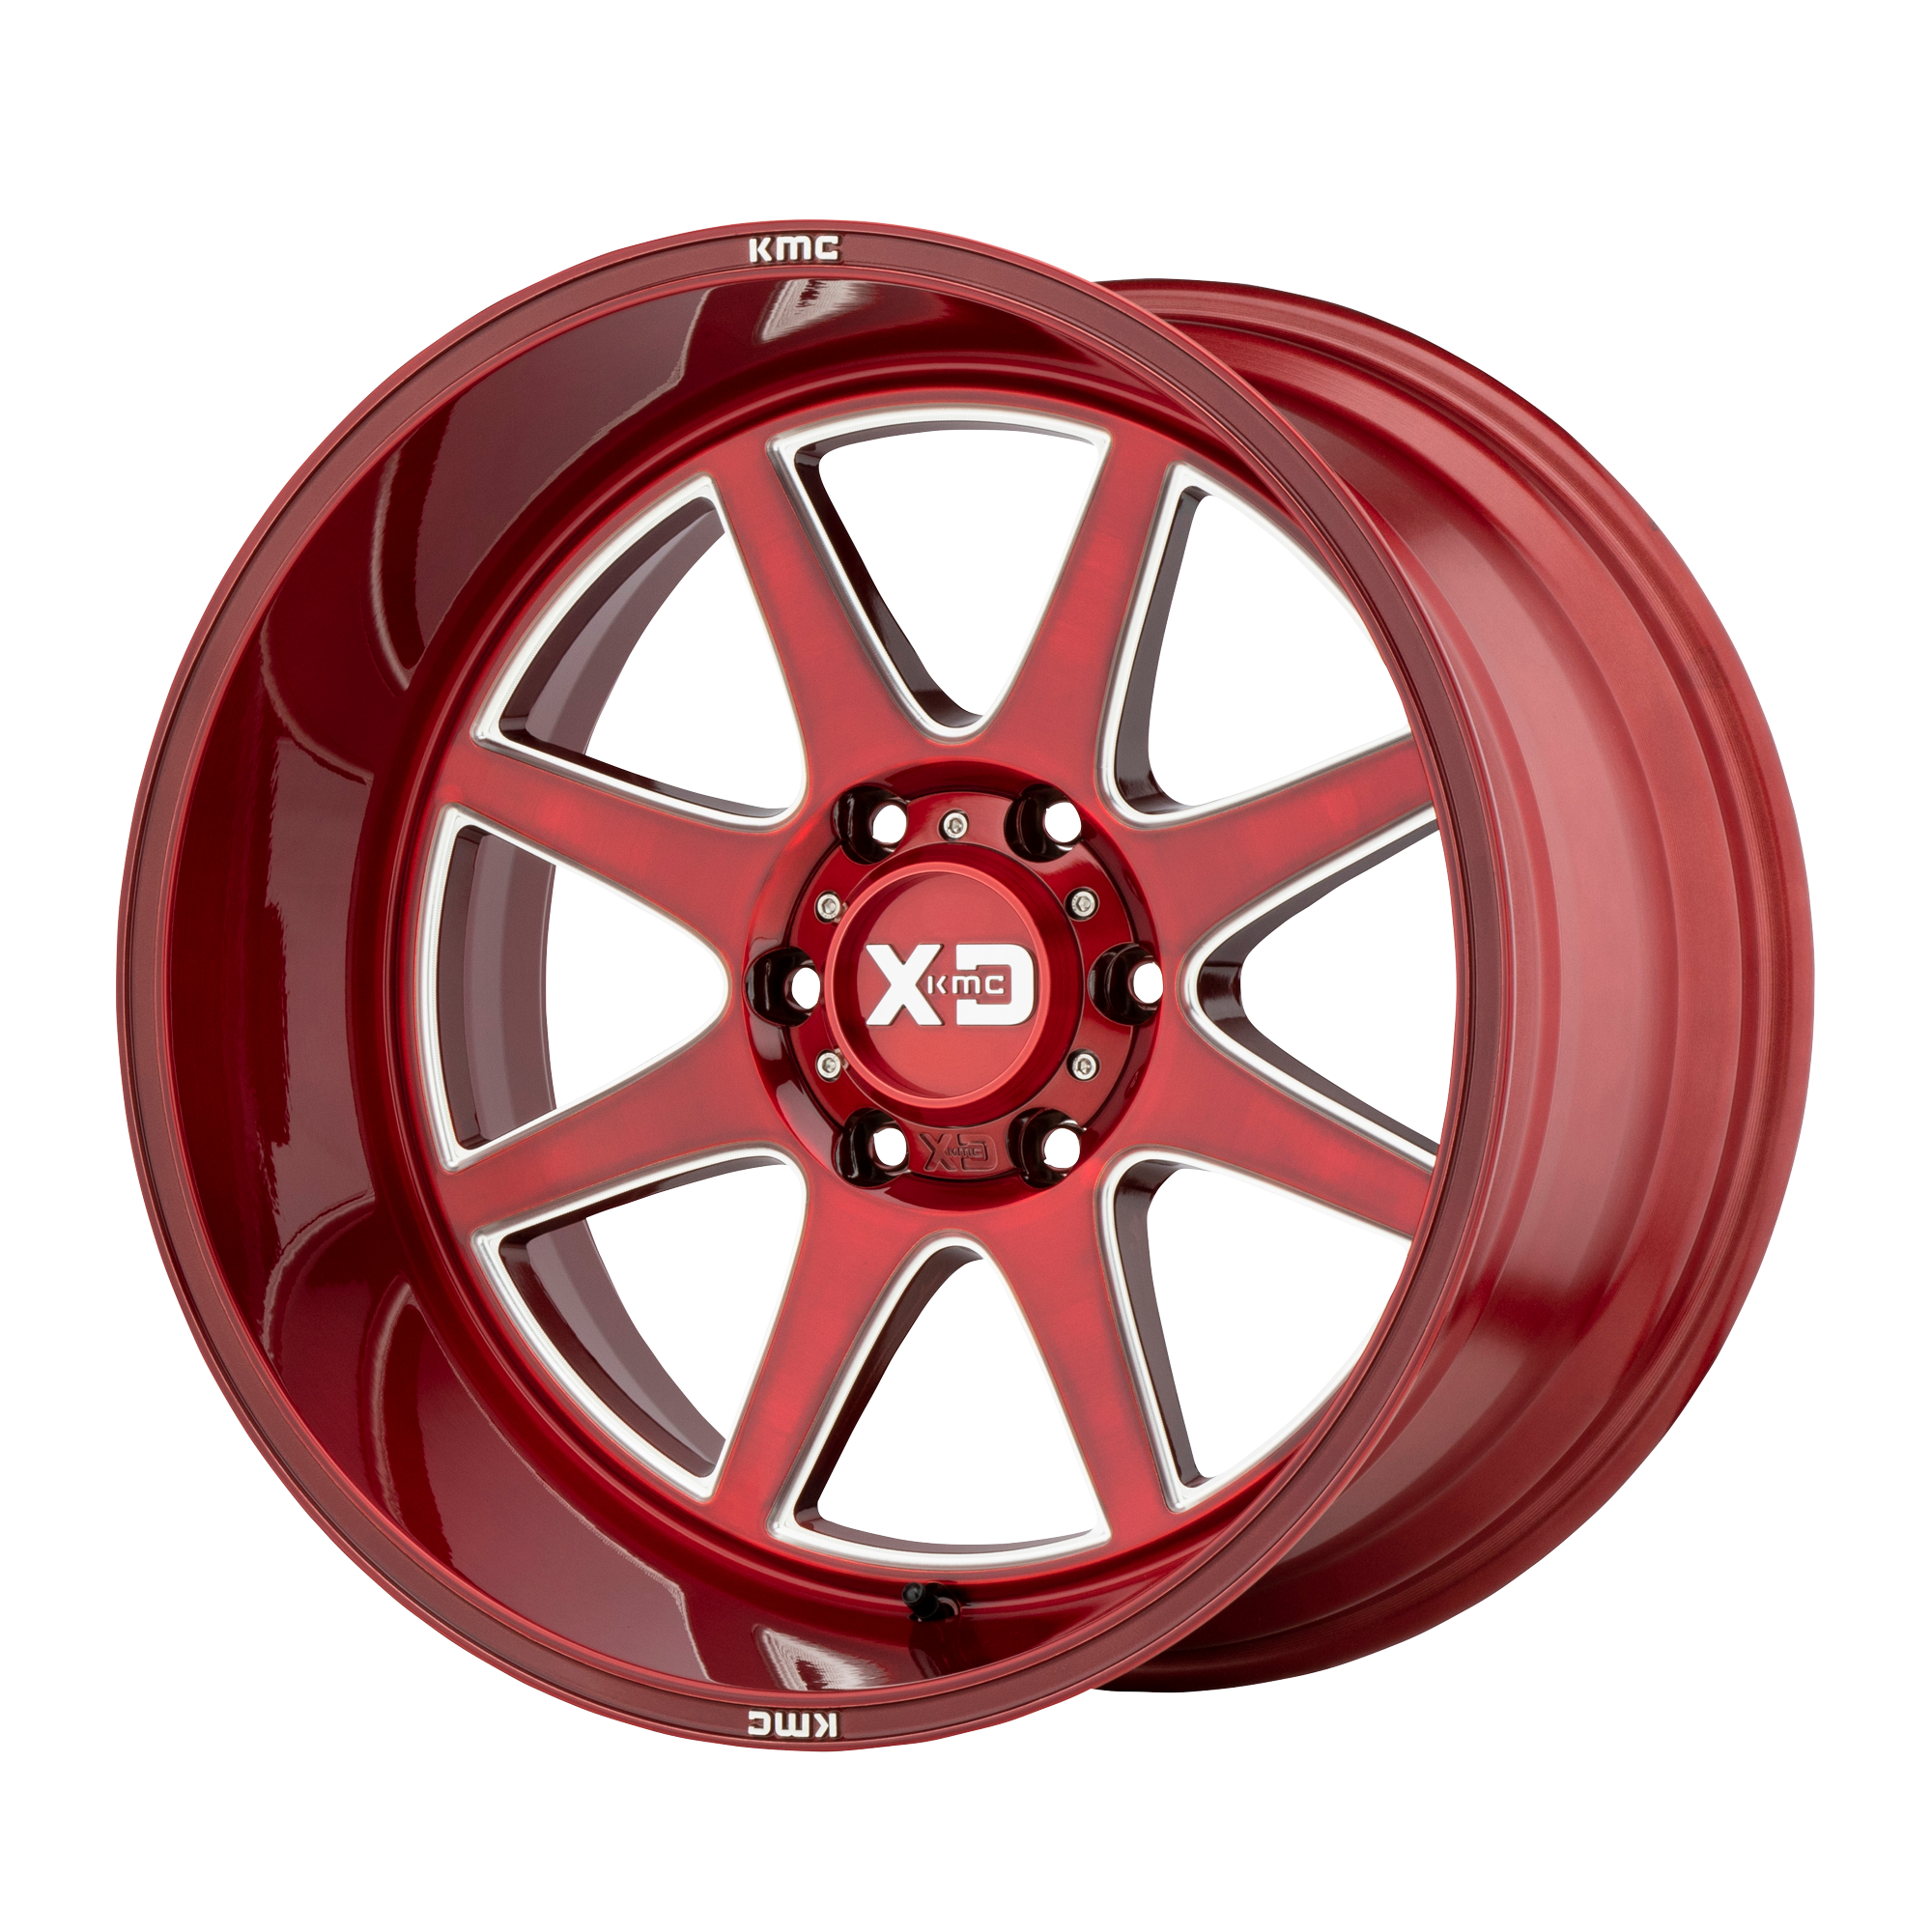 XD SERIES XD844 PIKE hliníkové disky 9x20 8x170 ET18 Brushed Red With Milled Accent